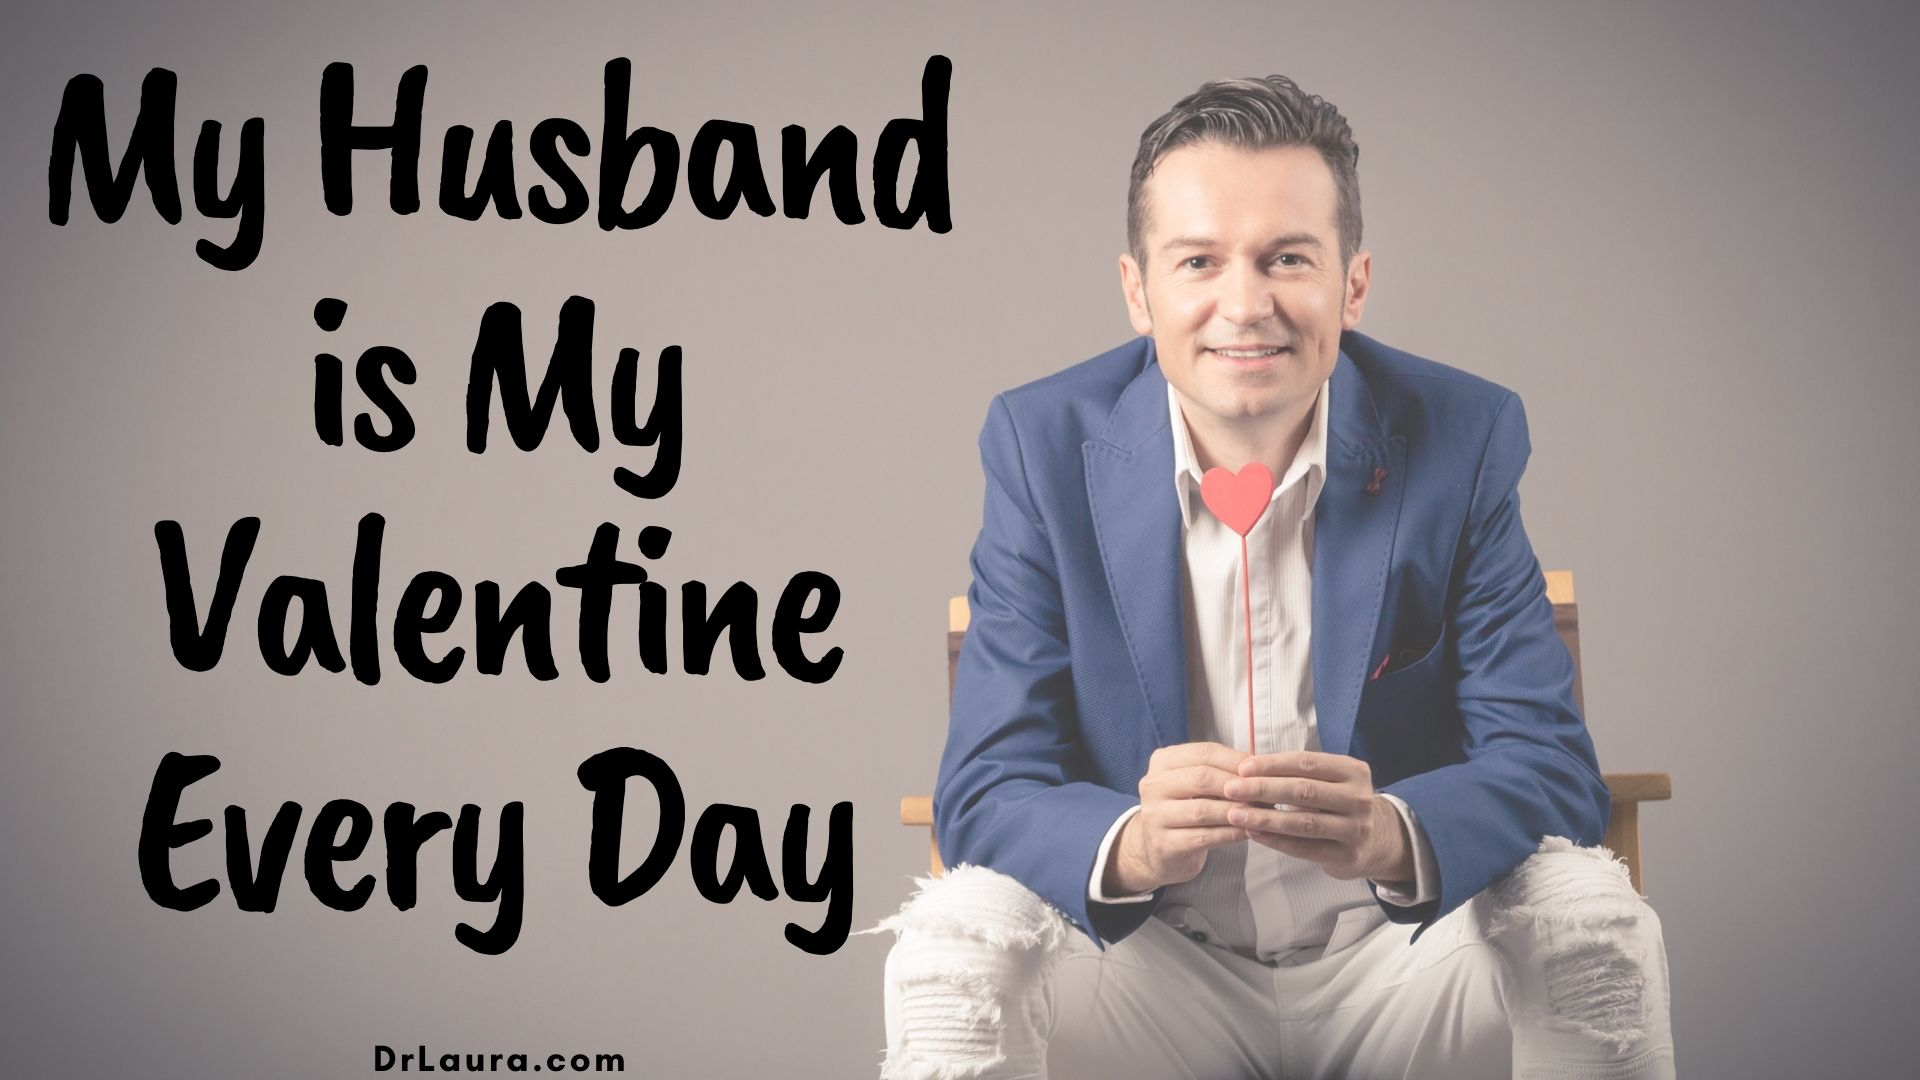 Email of the Day: With Loving Gratitude to My Husband